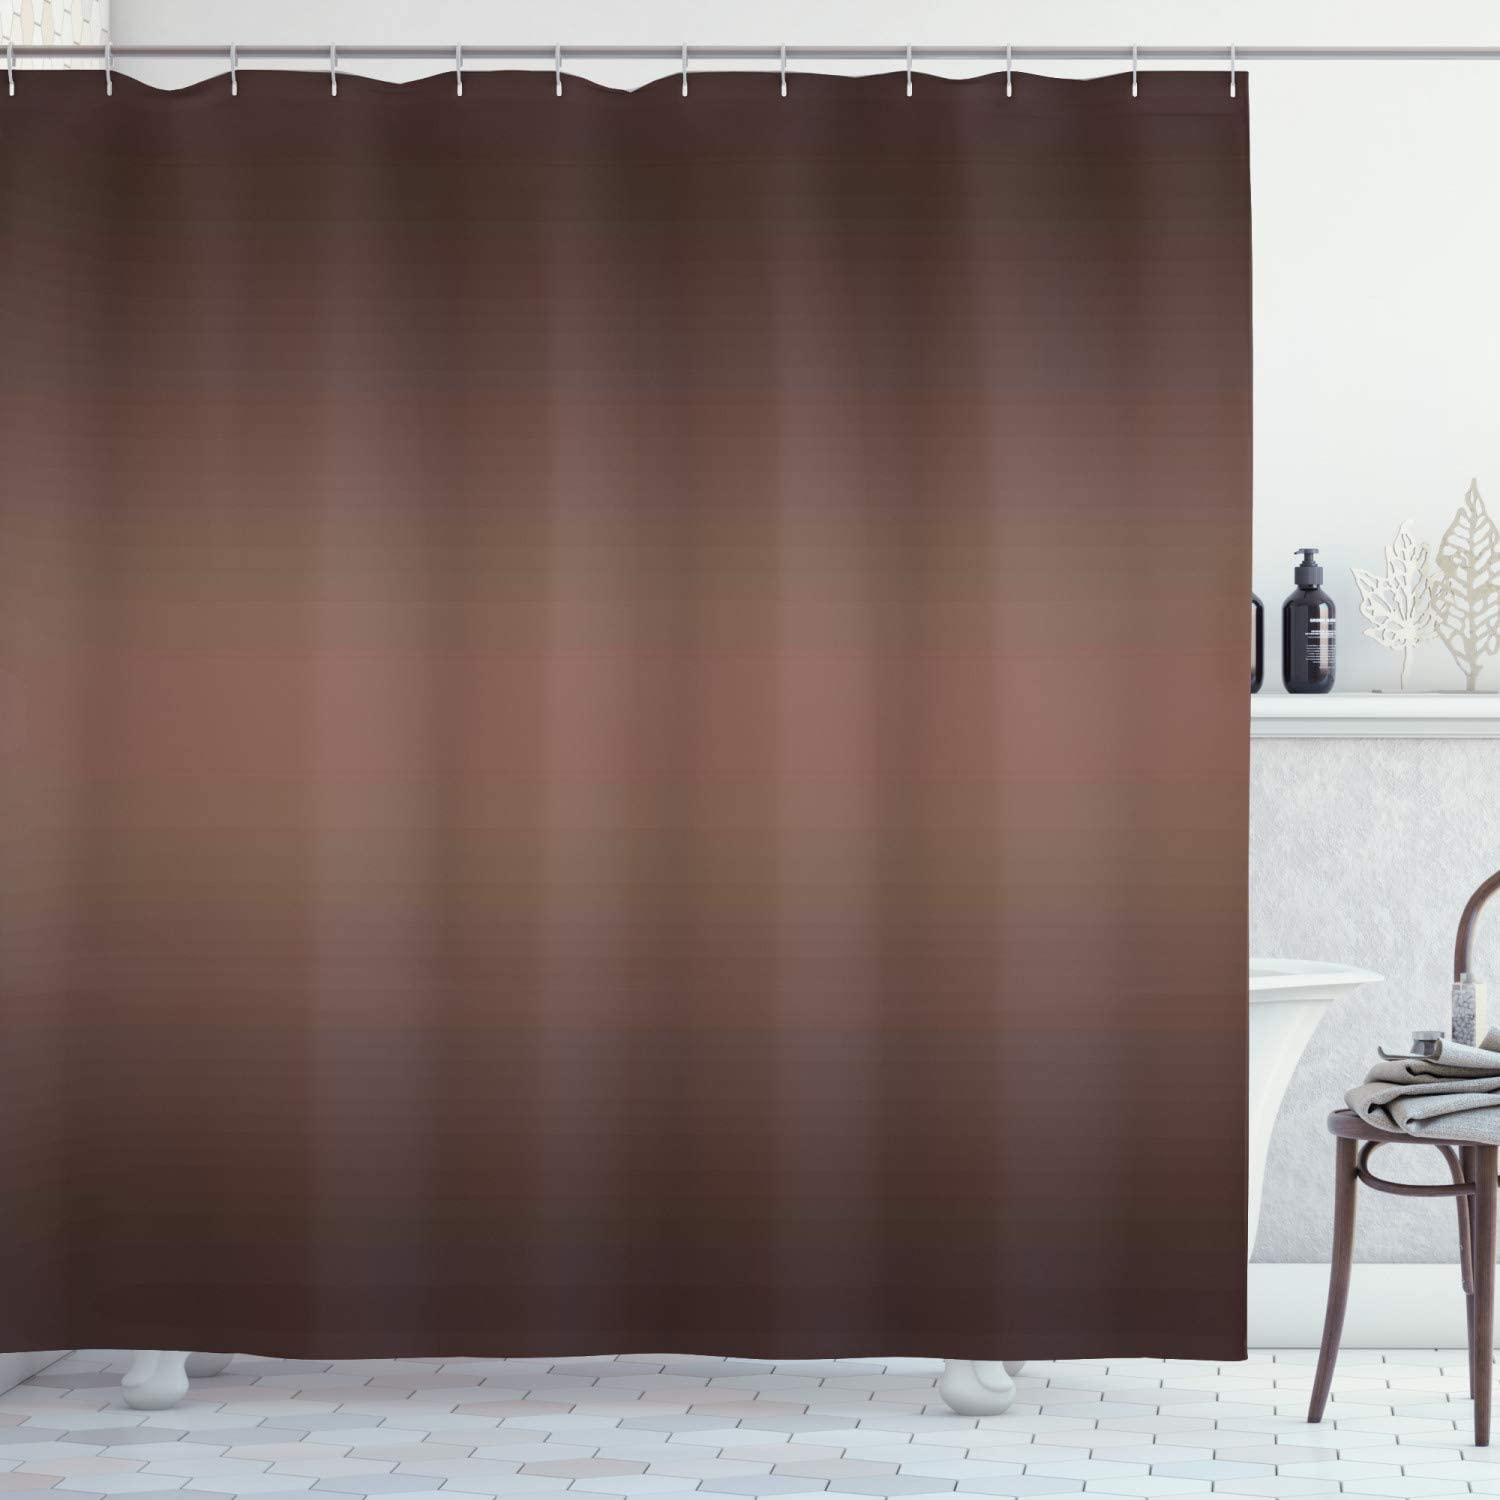 Ambesonne Ombre Shower Curtain, Dark Chocolate Healty Foods Brown Color Inspired Ombre Design Digital Print Artwork Image, Cloth Fabric Bathroom Decor Set with Hooks, 70